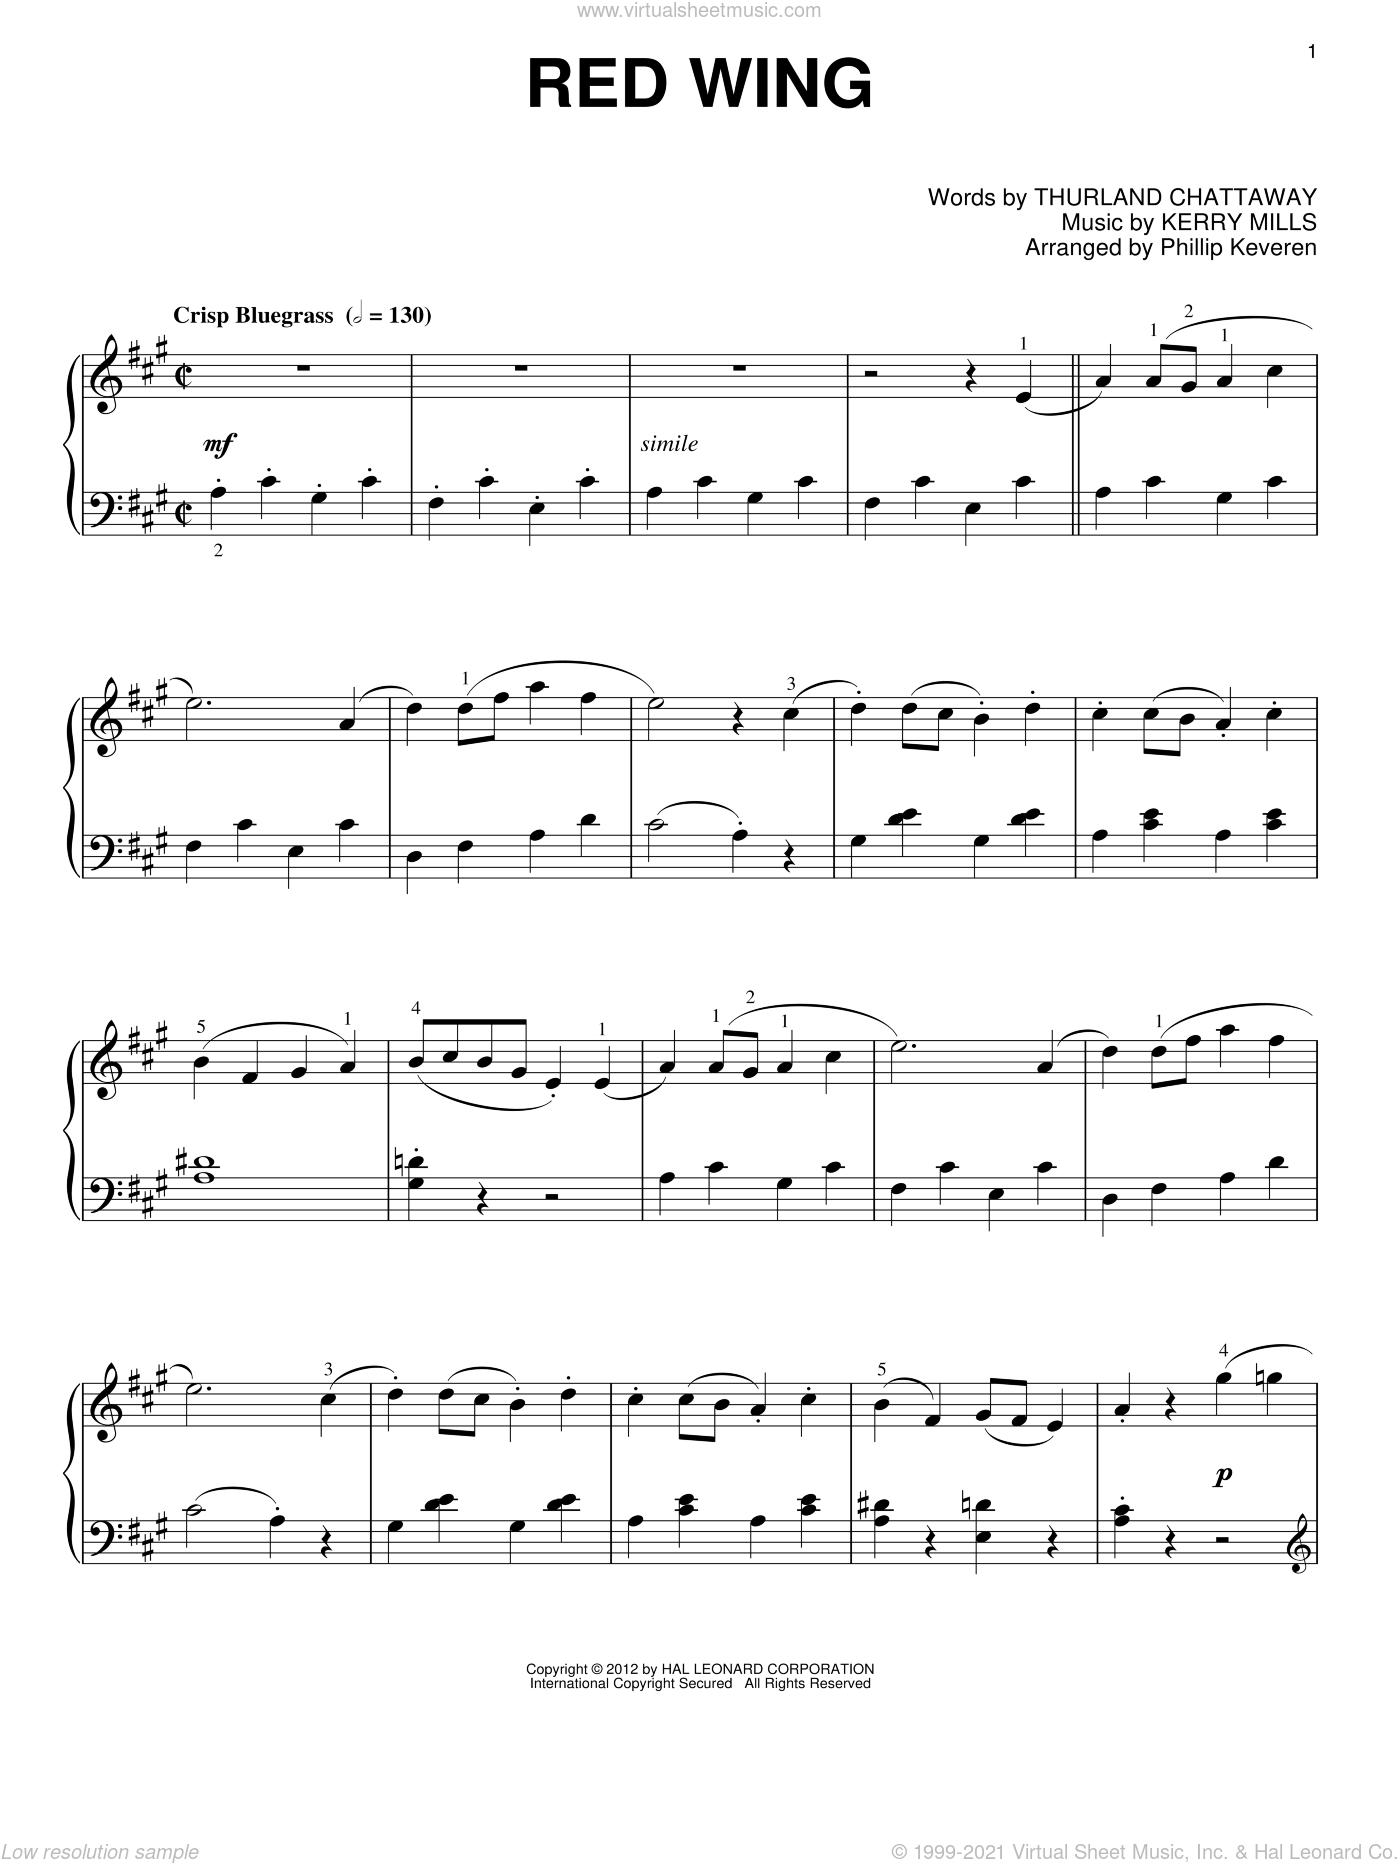 Red Wing sheet music for piano solo by Phillip Keveren, Kerry Mills and Thurland Chattaway, intermediate skill level